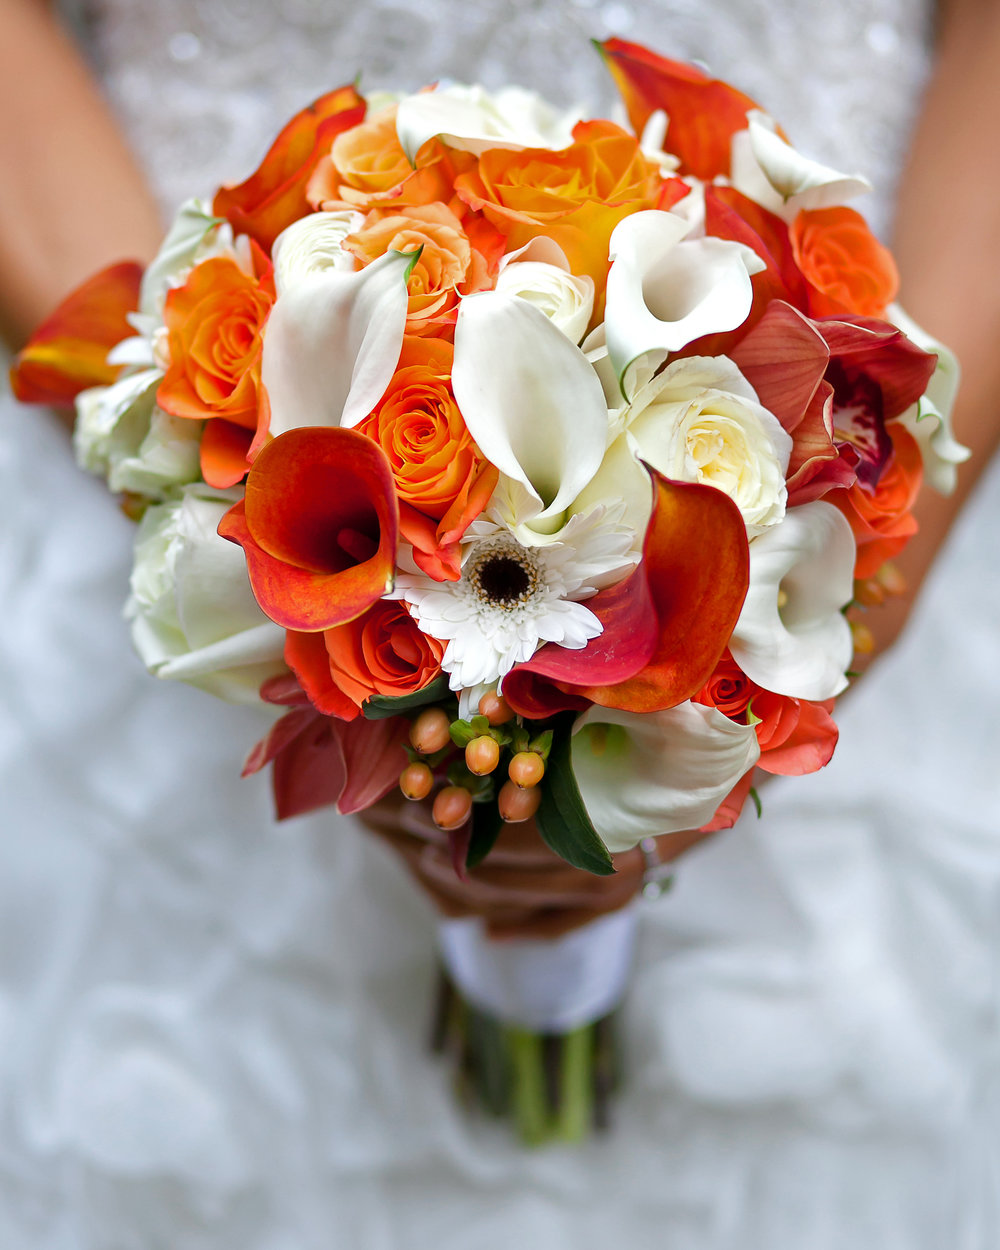 Orange Burst Nosegay (Above) - orange and white seasonal blooms in an elegant hand-tied bouquet